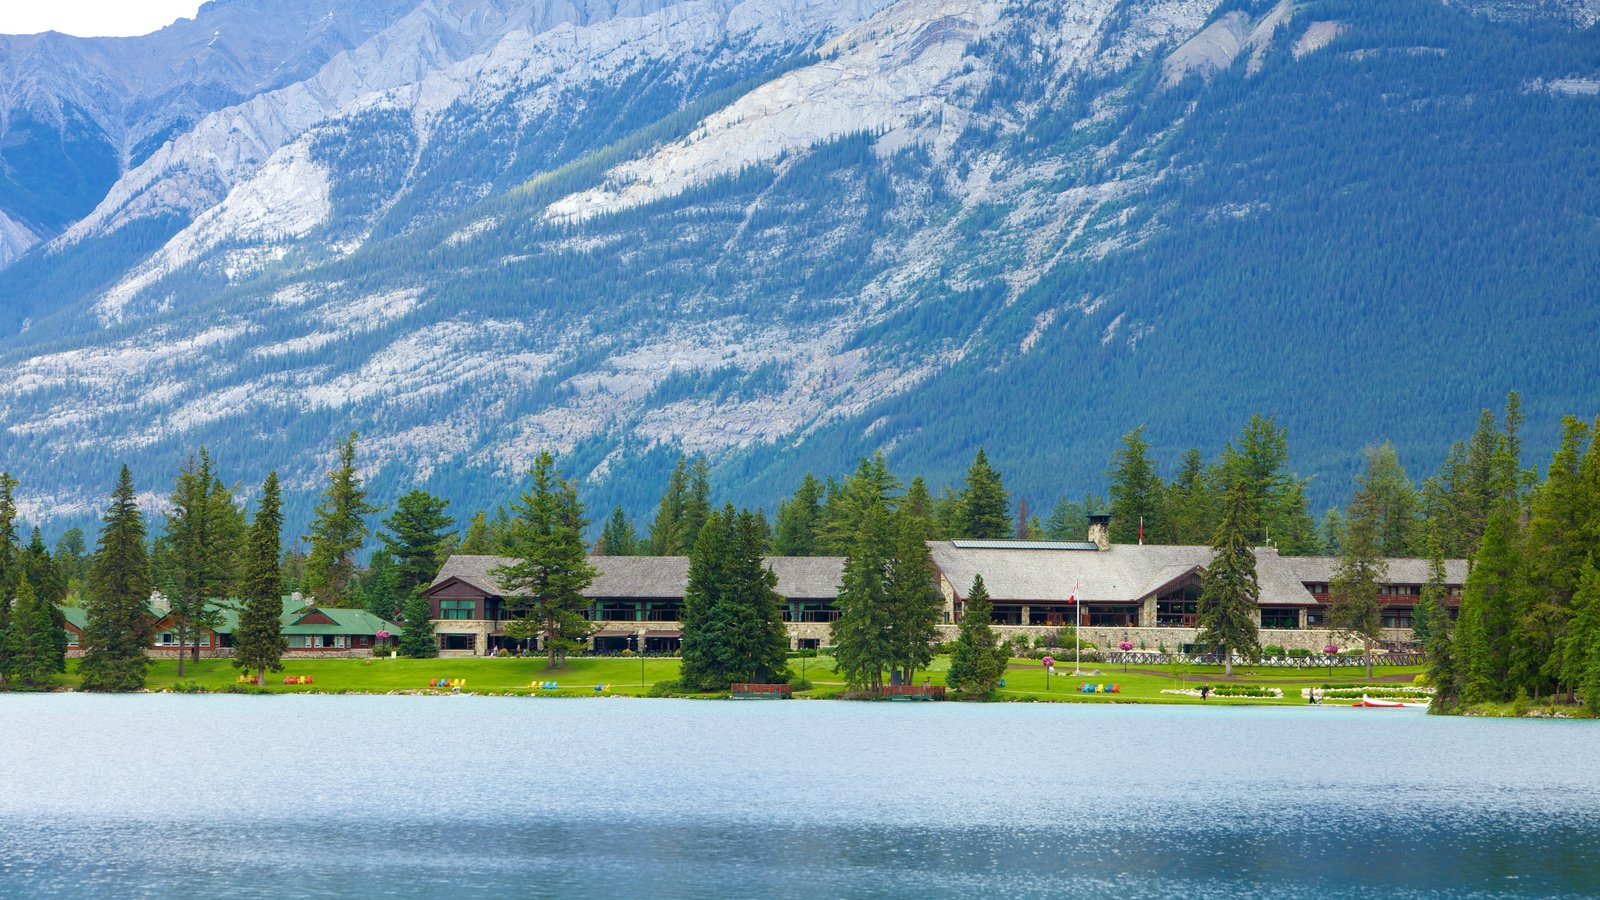 Jasper National Park which includes mountains, a garden and landscape views